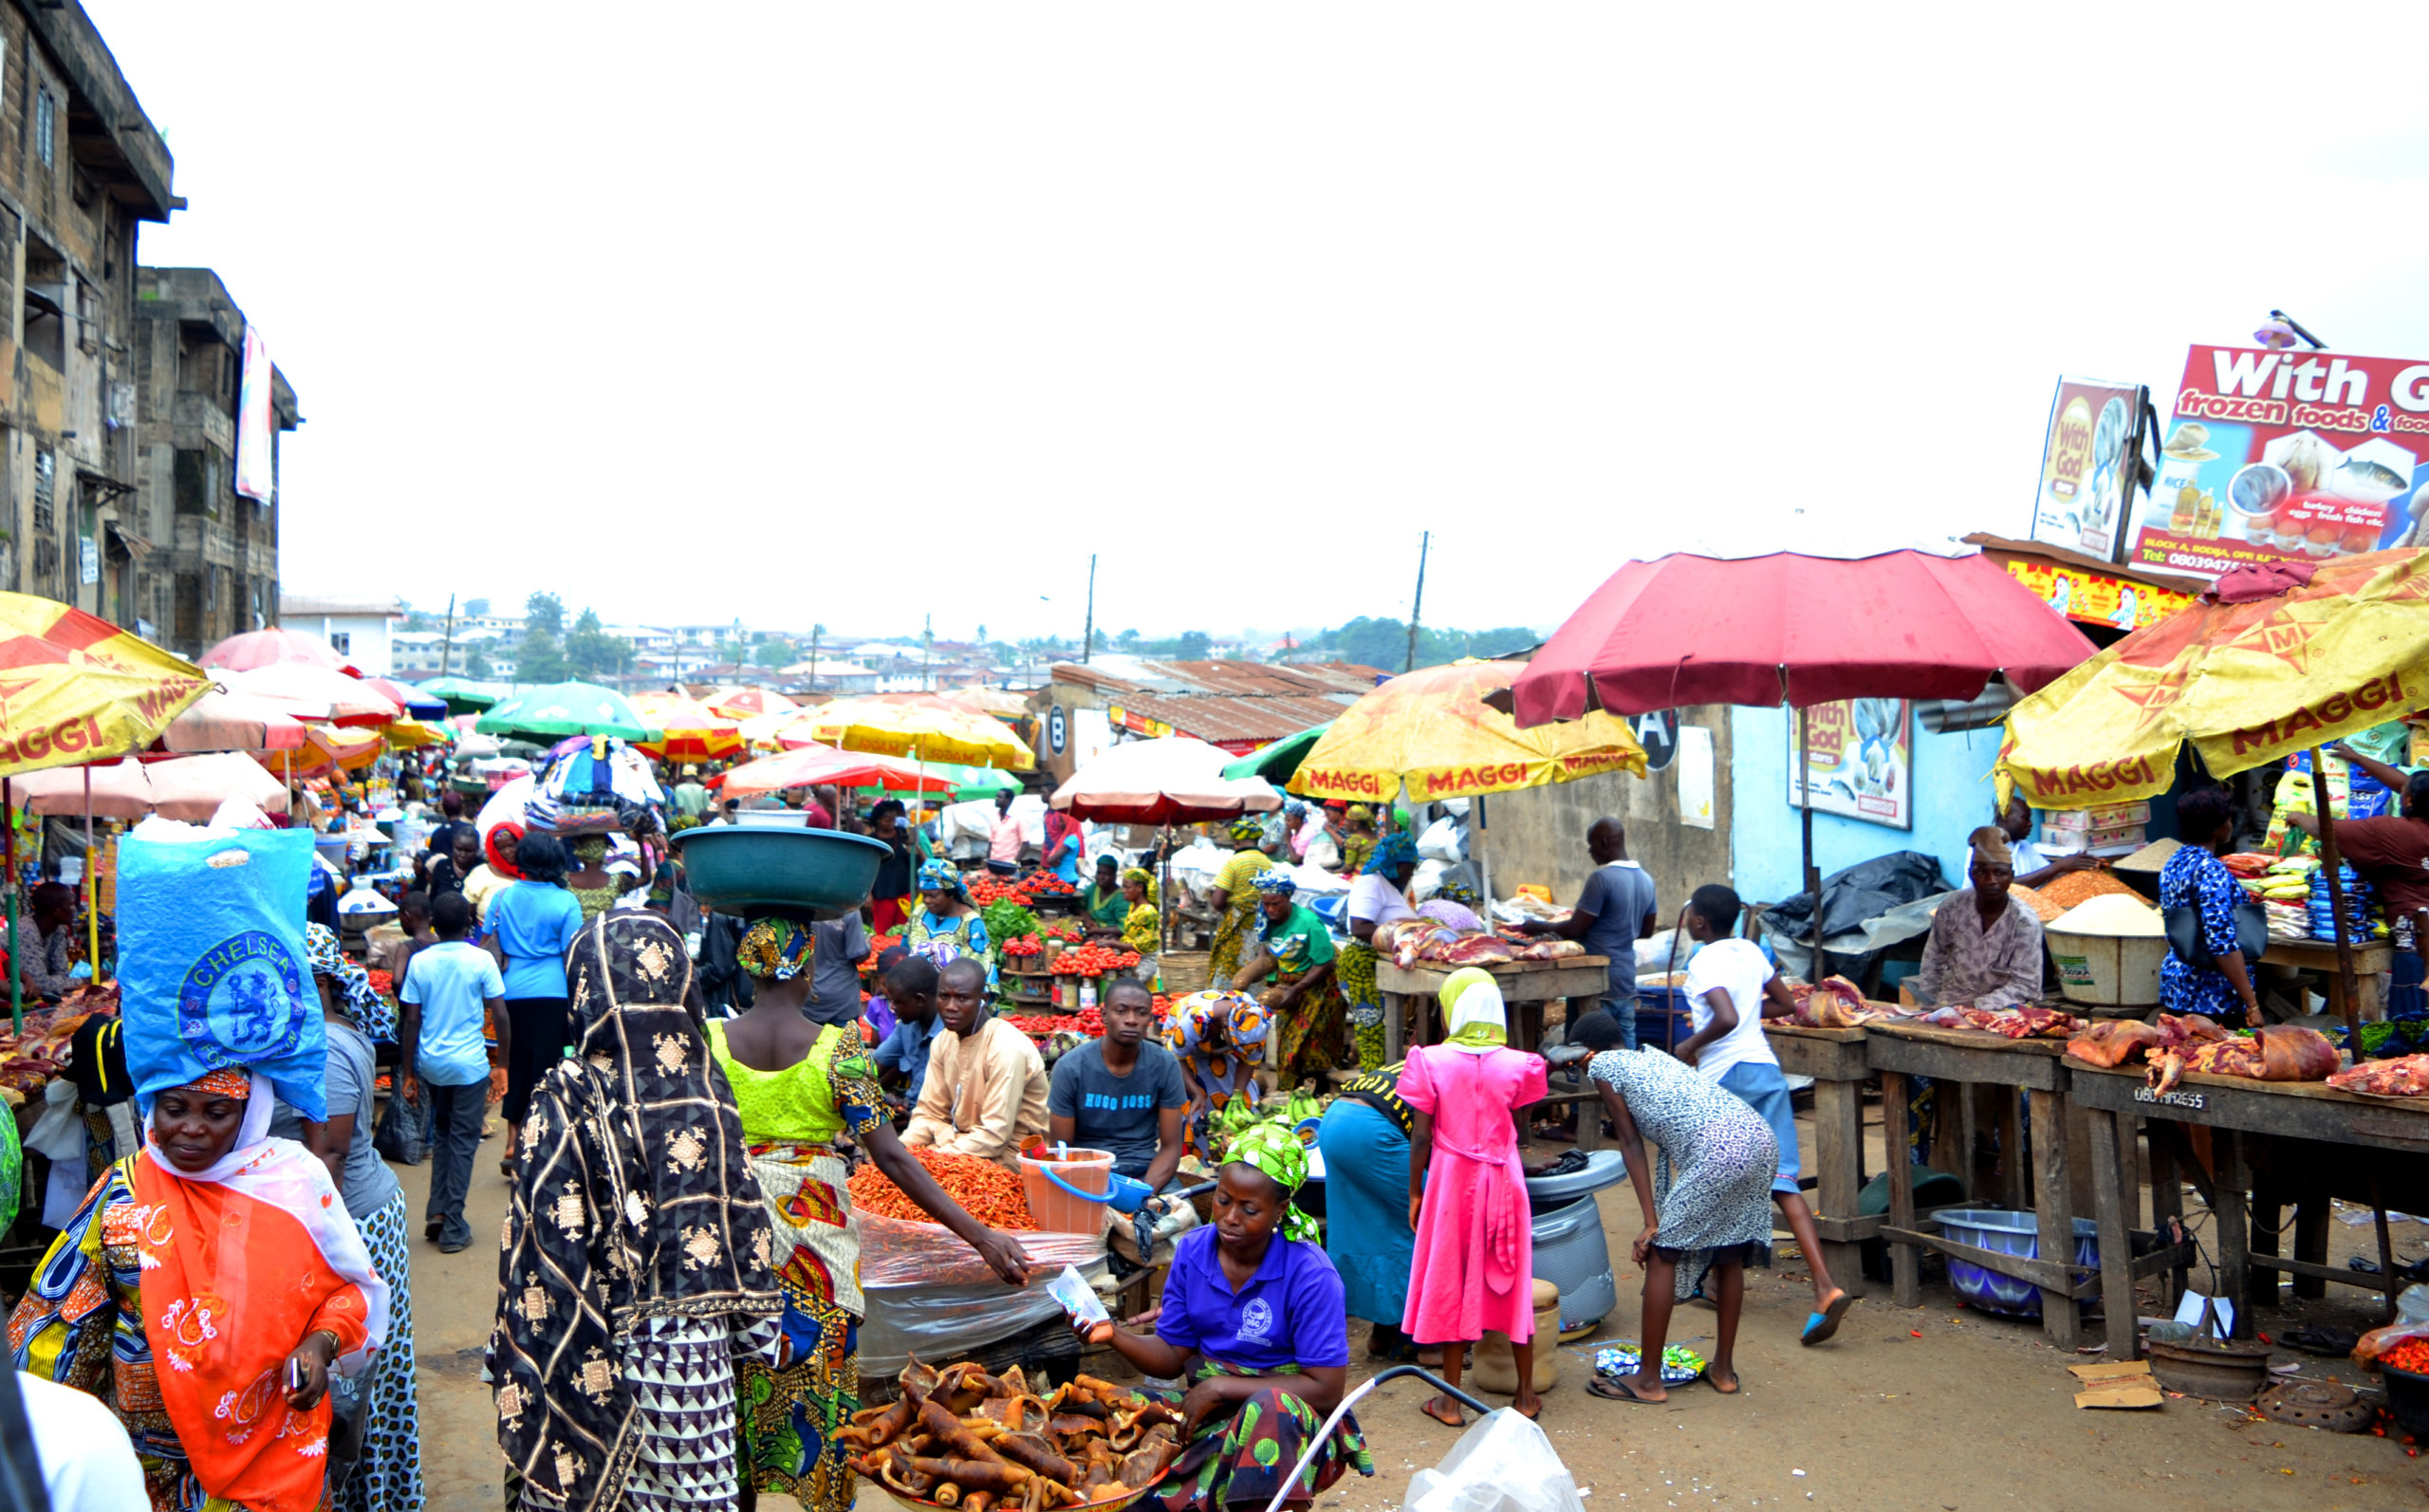 If you bend and look between you legs in a market, what will you see?